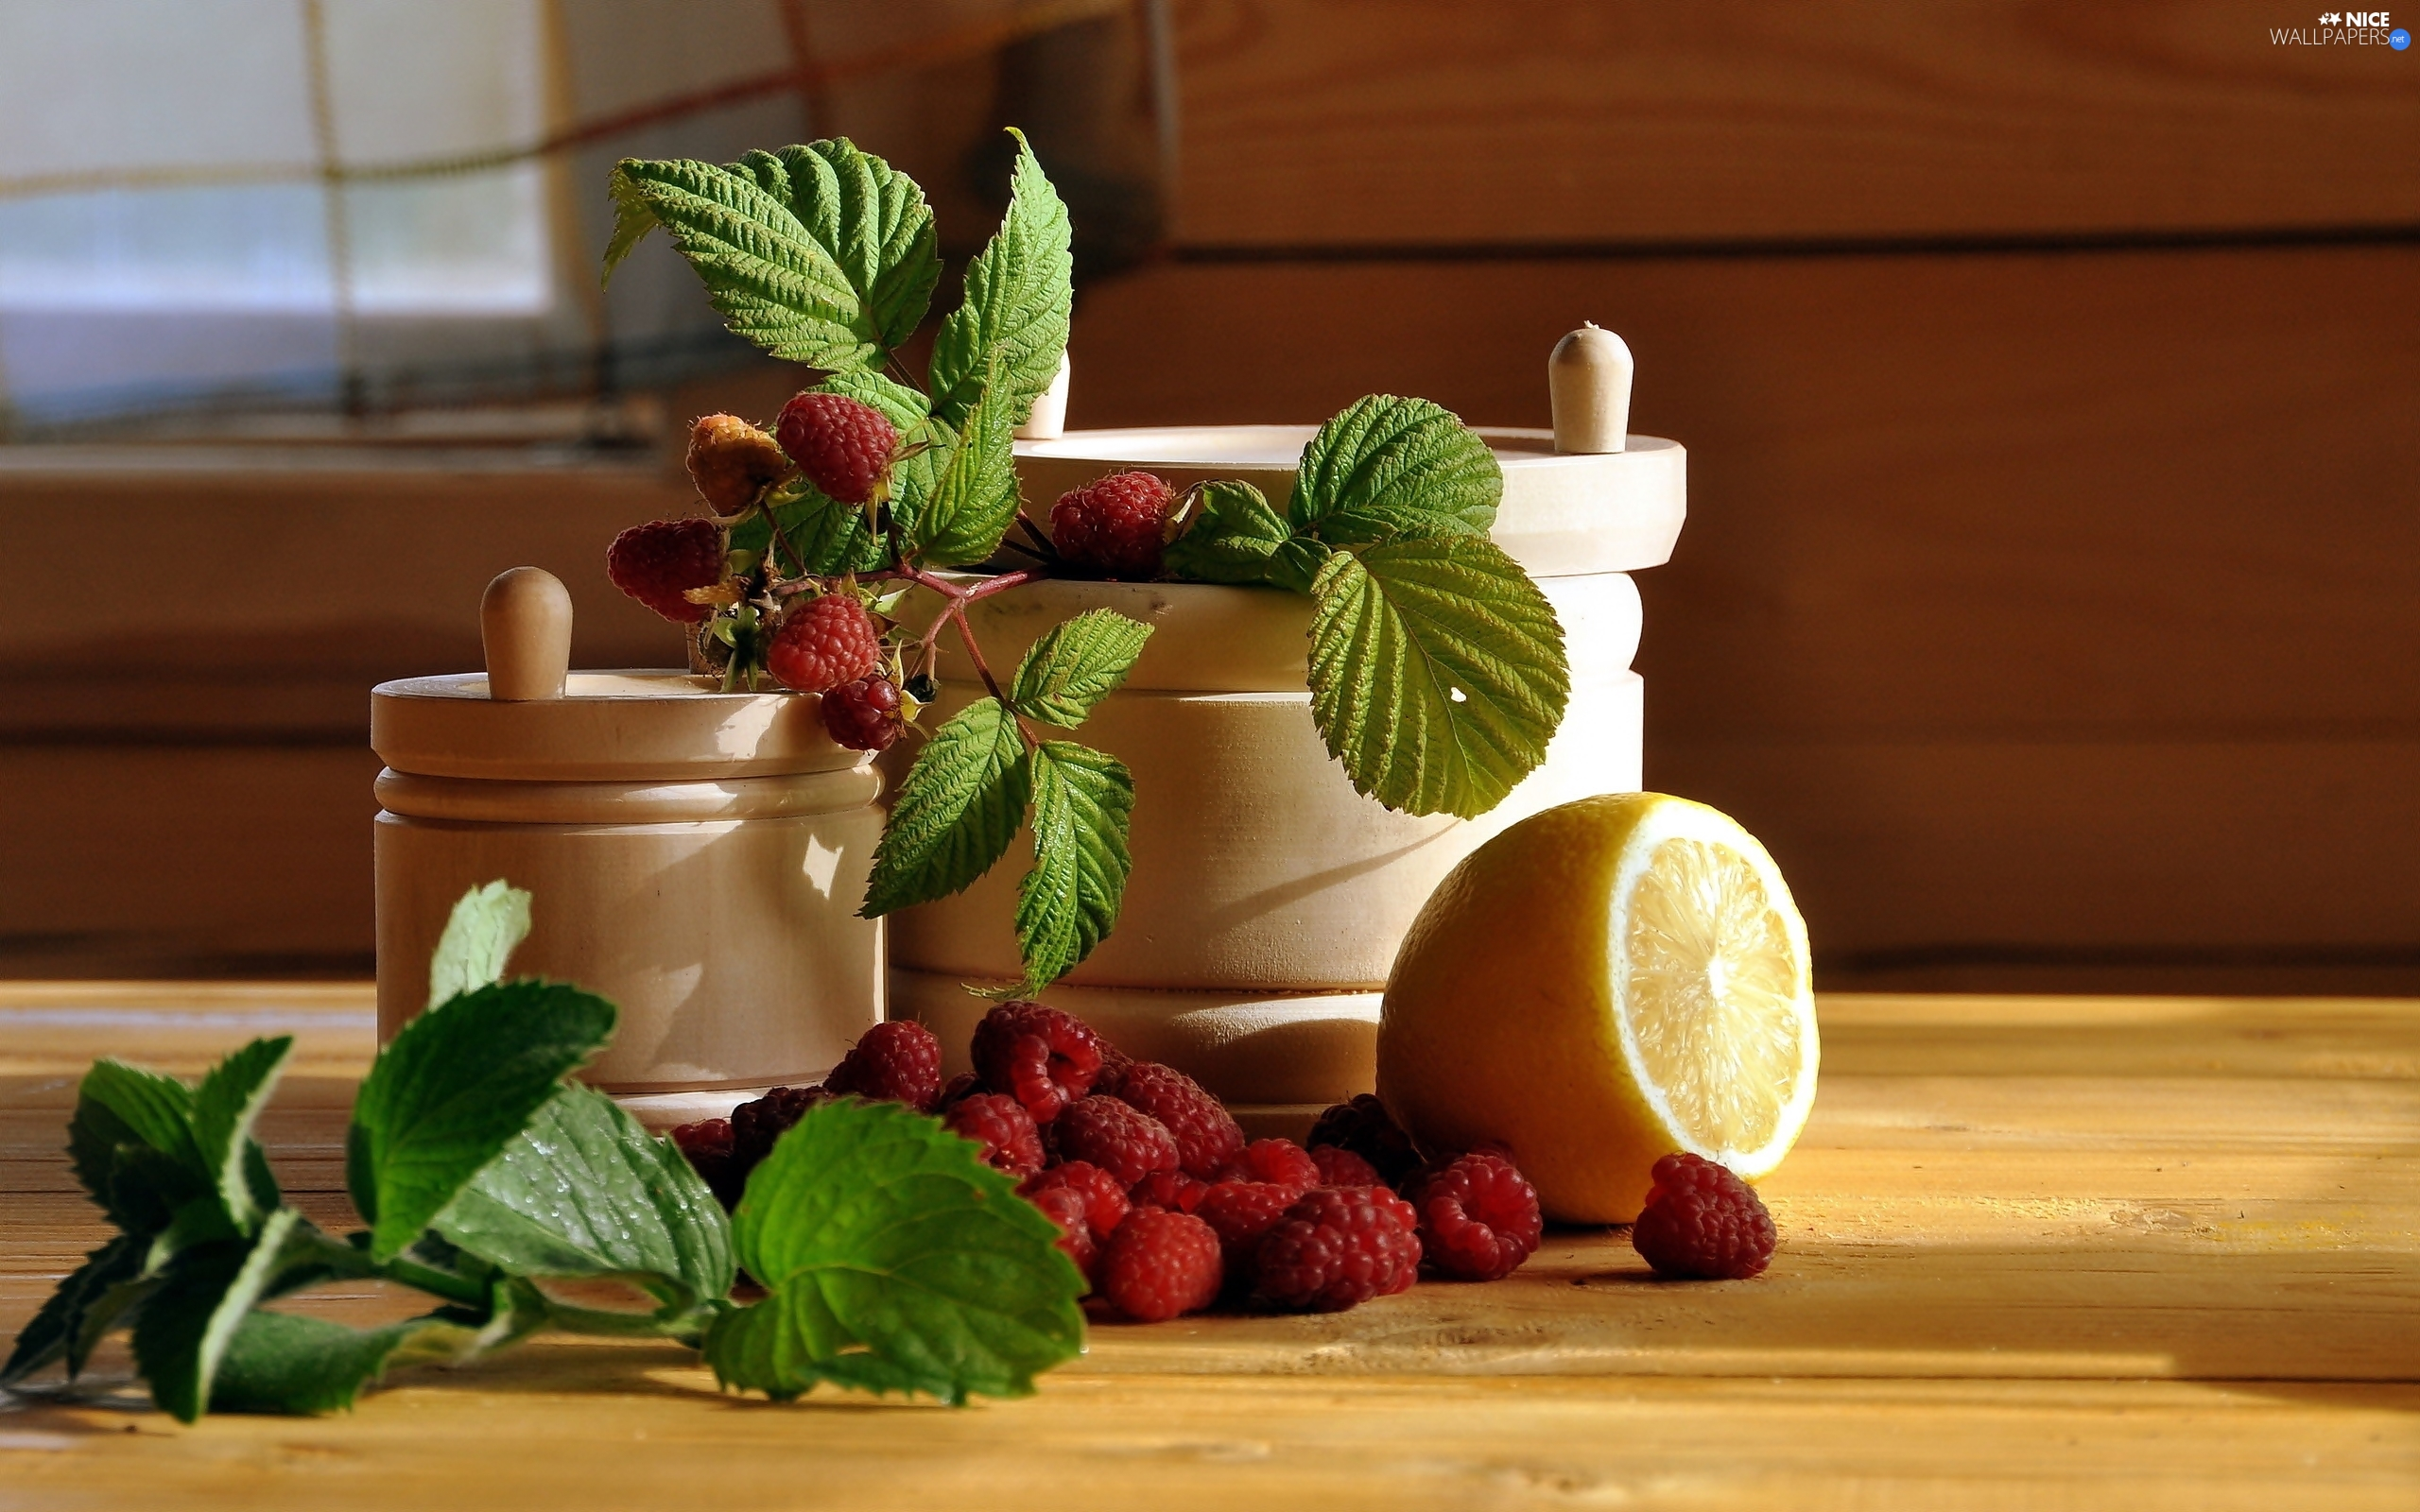 Lemon, twig, Containers, composition, wood, raspberries